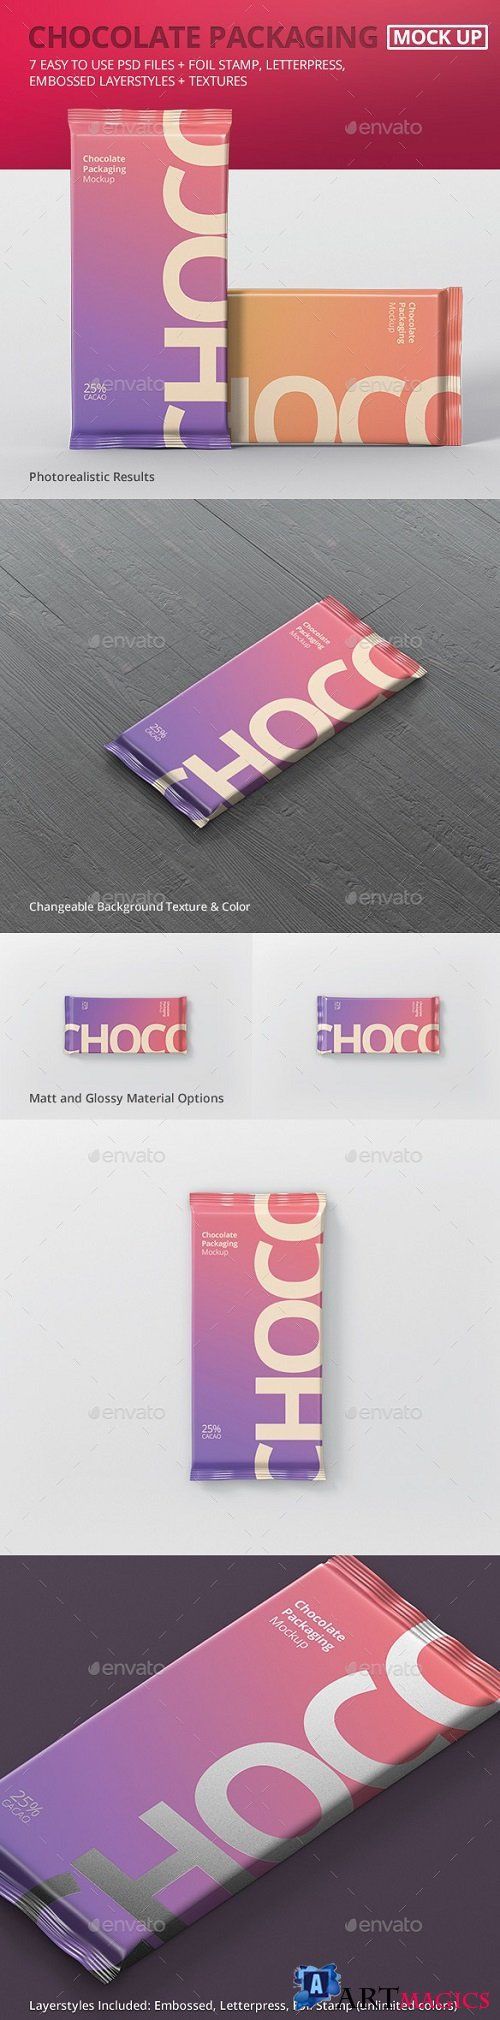 Foil Chocolate Packaging Mockup - 21120292